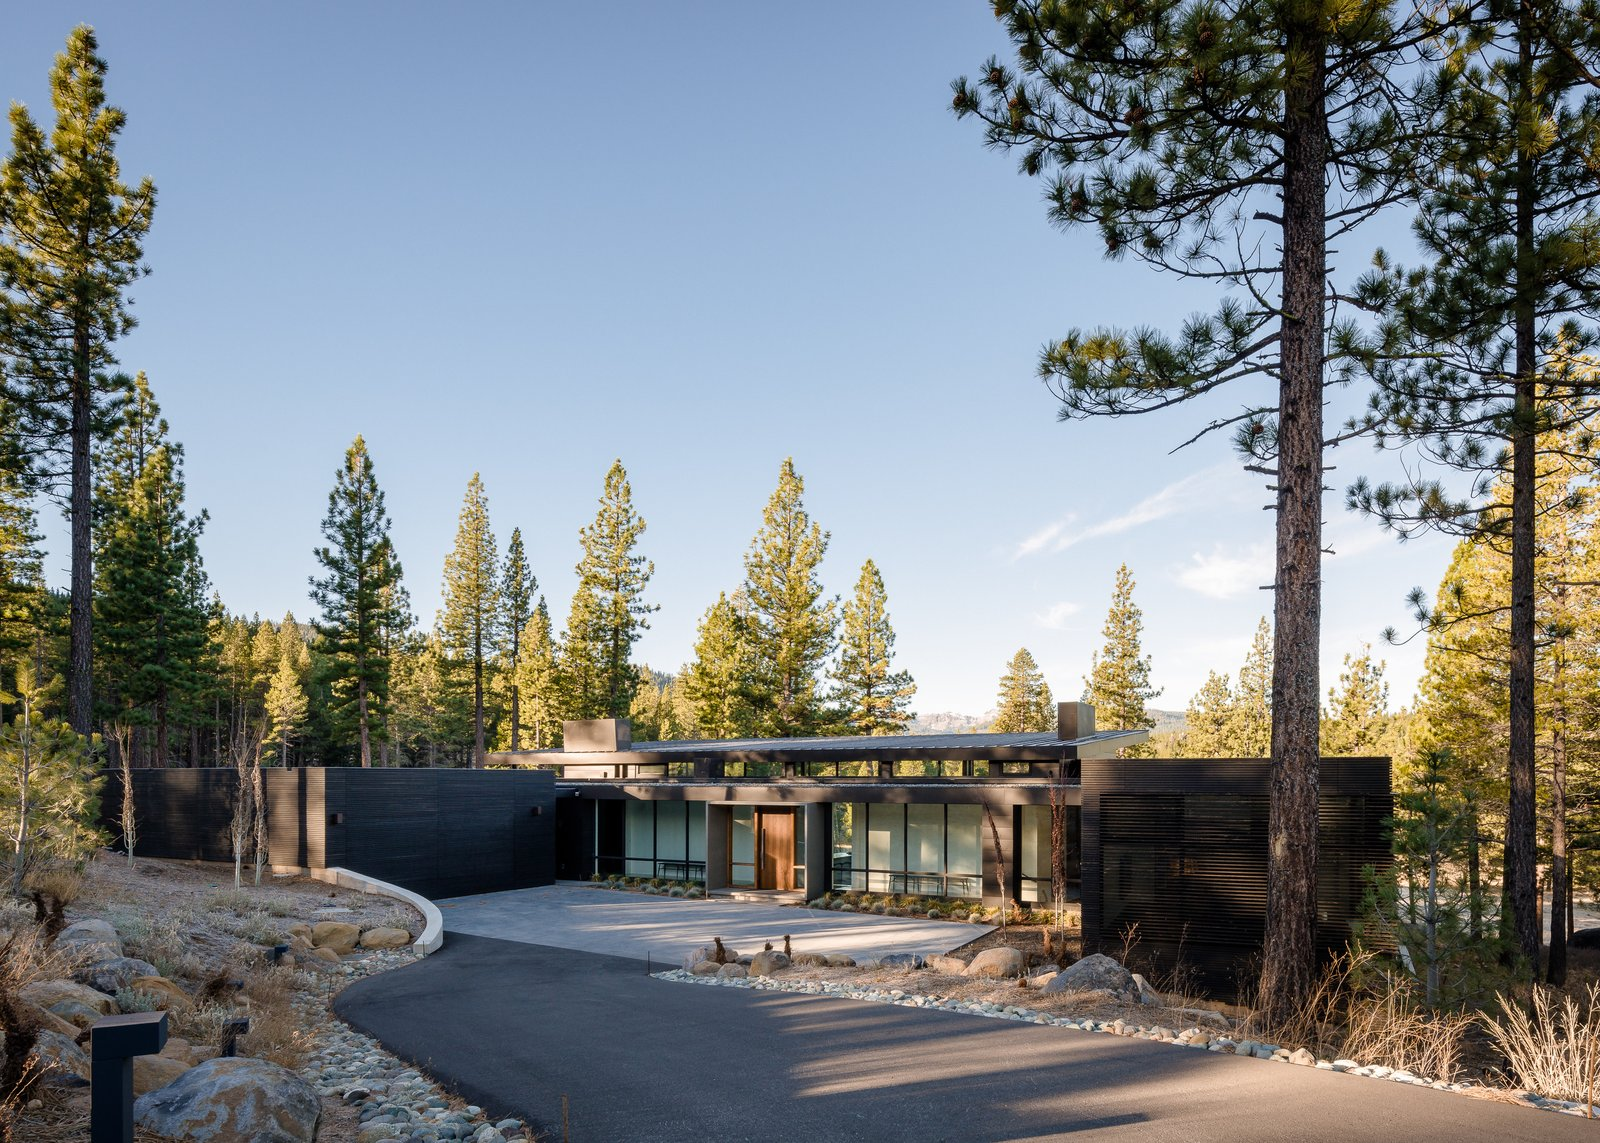 Exterior, House Building Type, Metal Siding Material, Flat RoofLine, and Shed RoofLine Entry Driveway Approach   Martis Camp Residence 1 by John Maniscalco Architecture